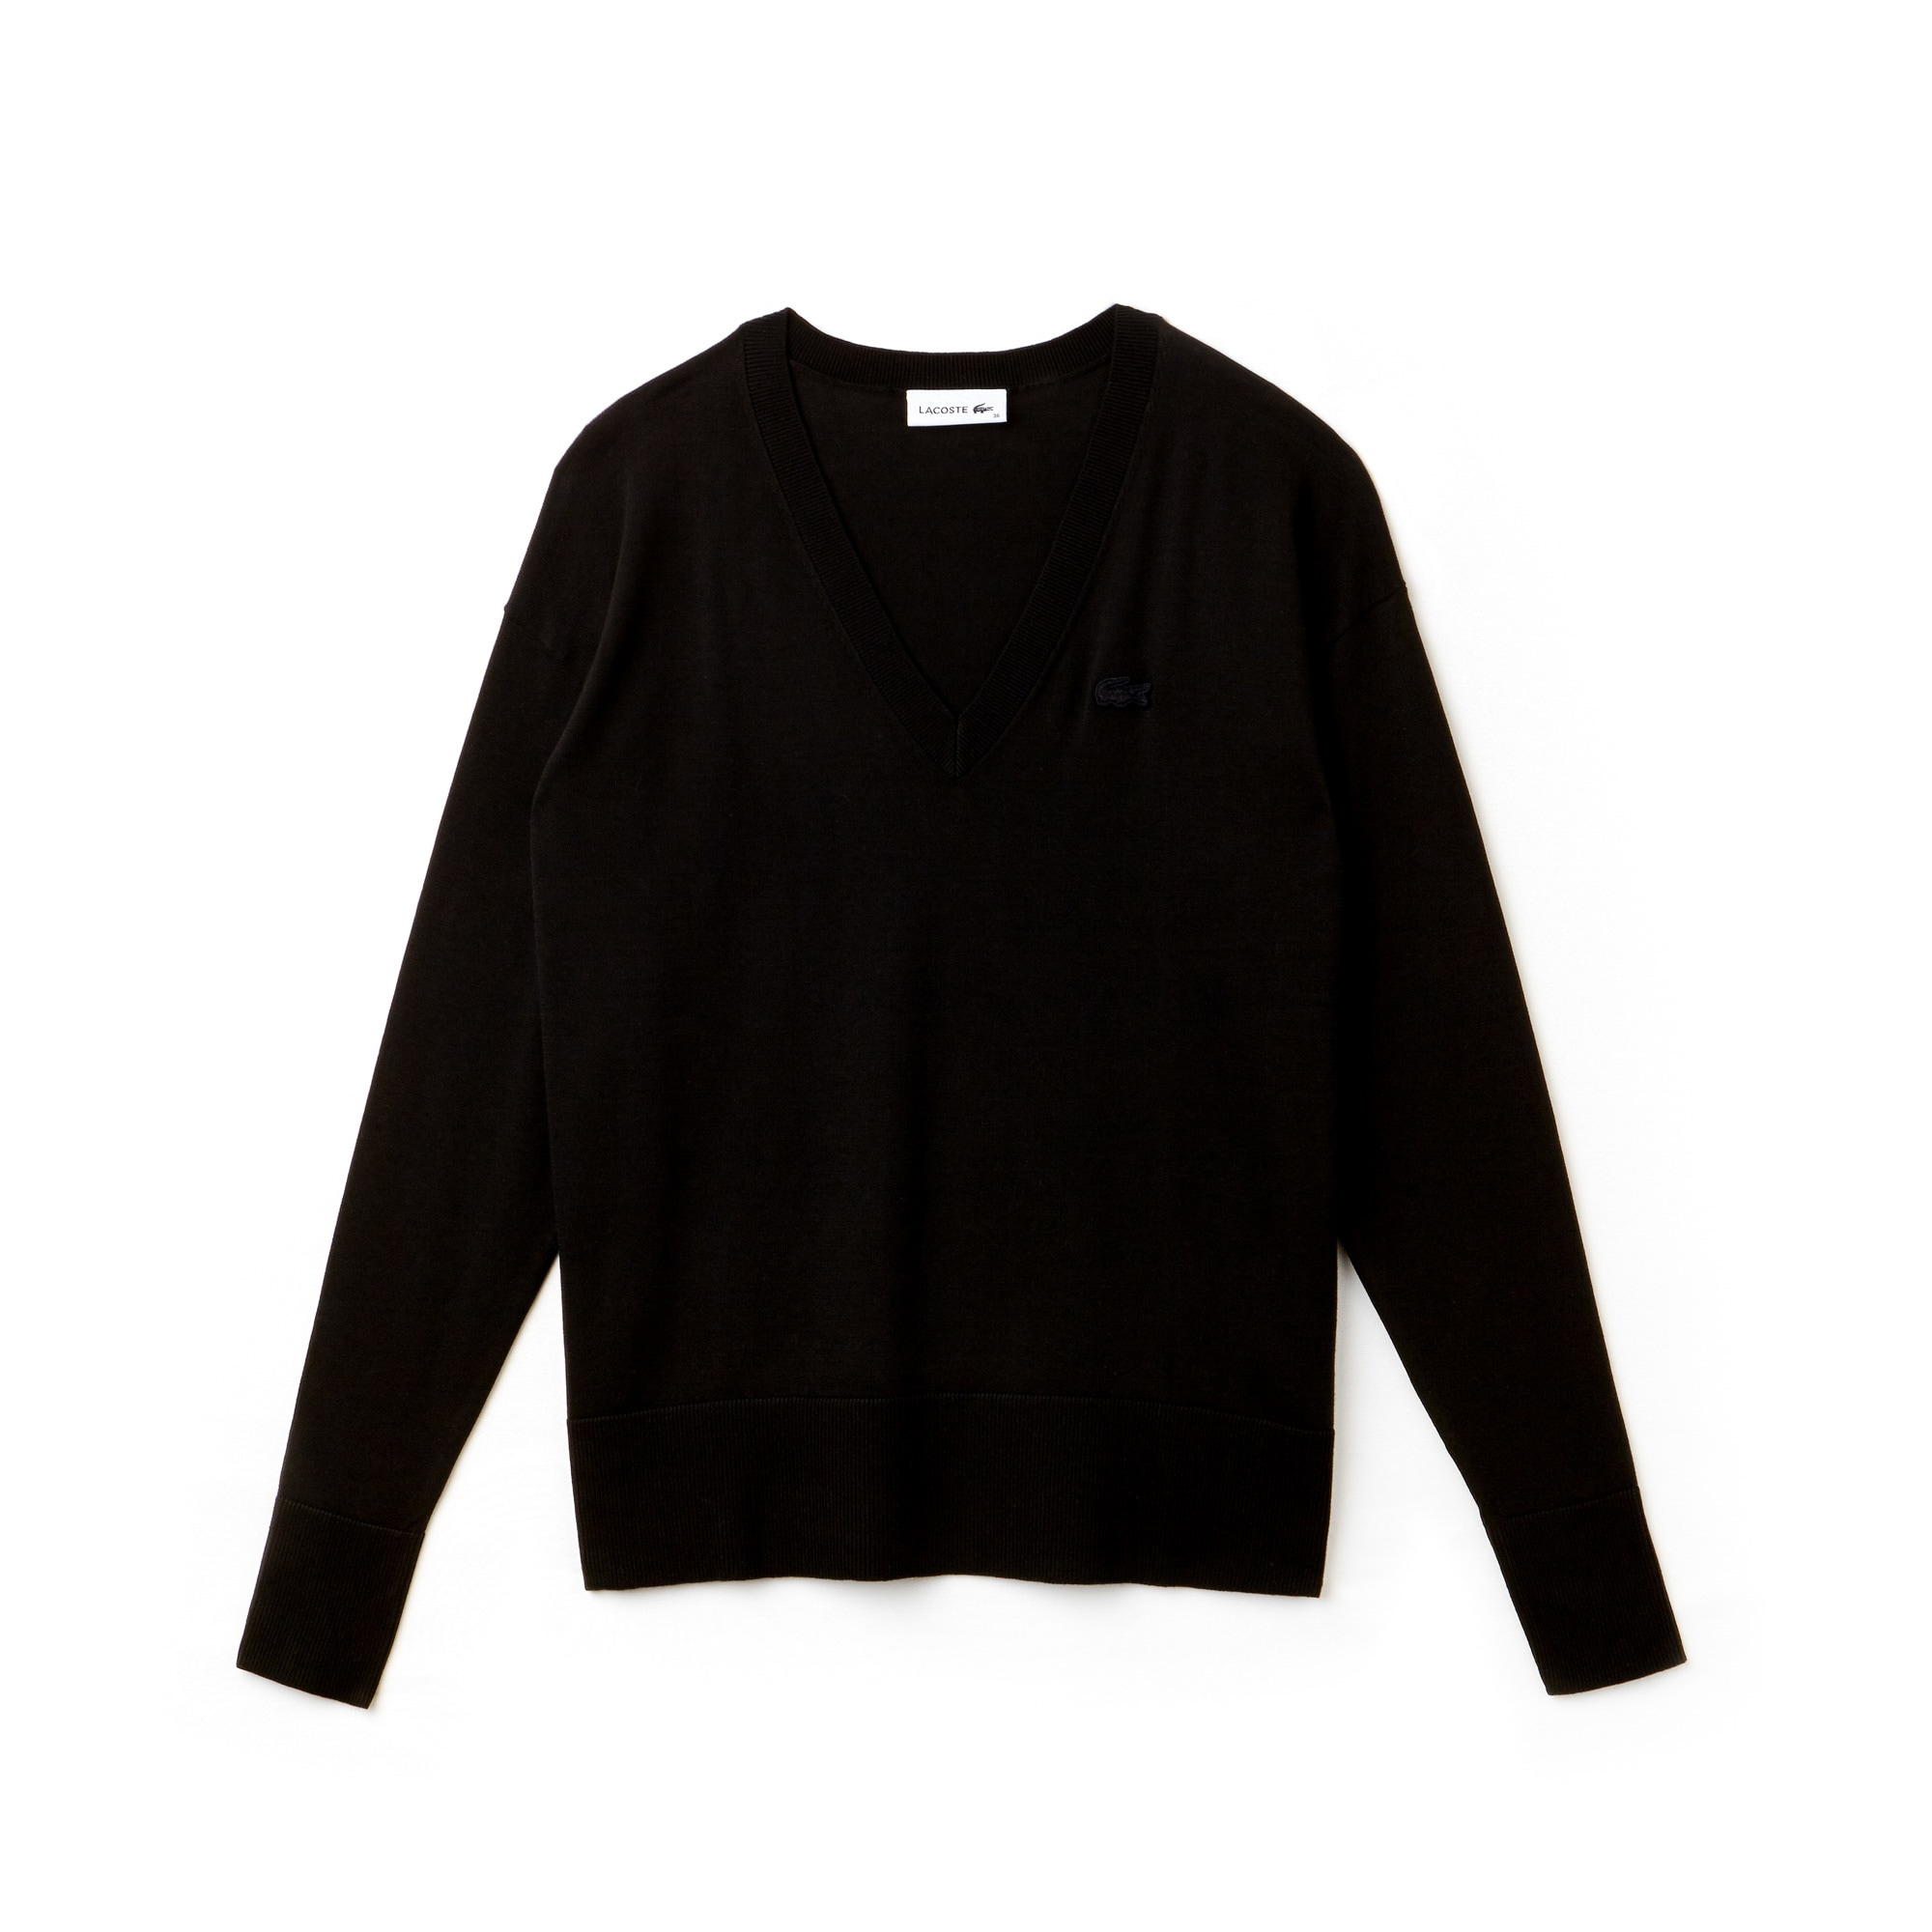 Women's V-Neck Cotton Sweater